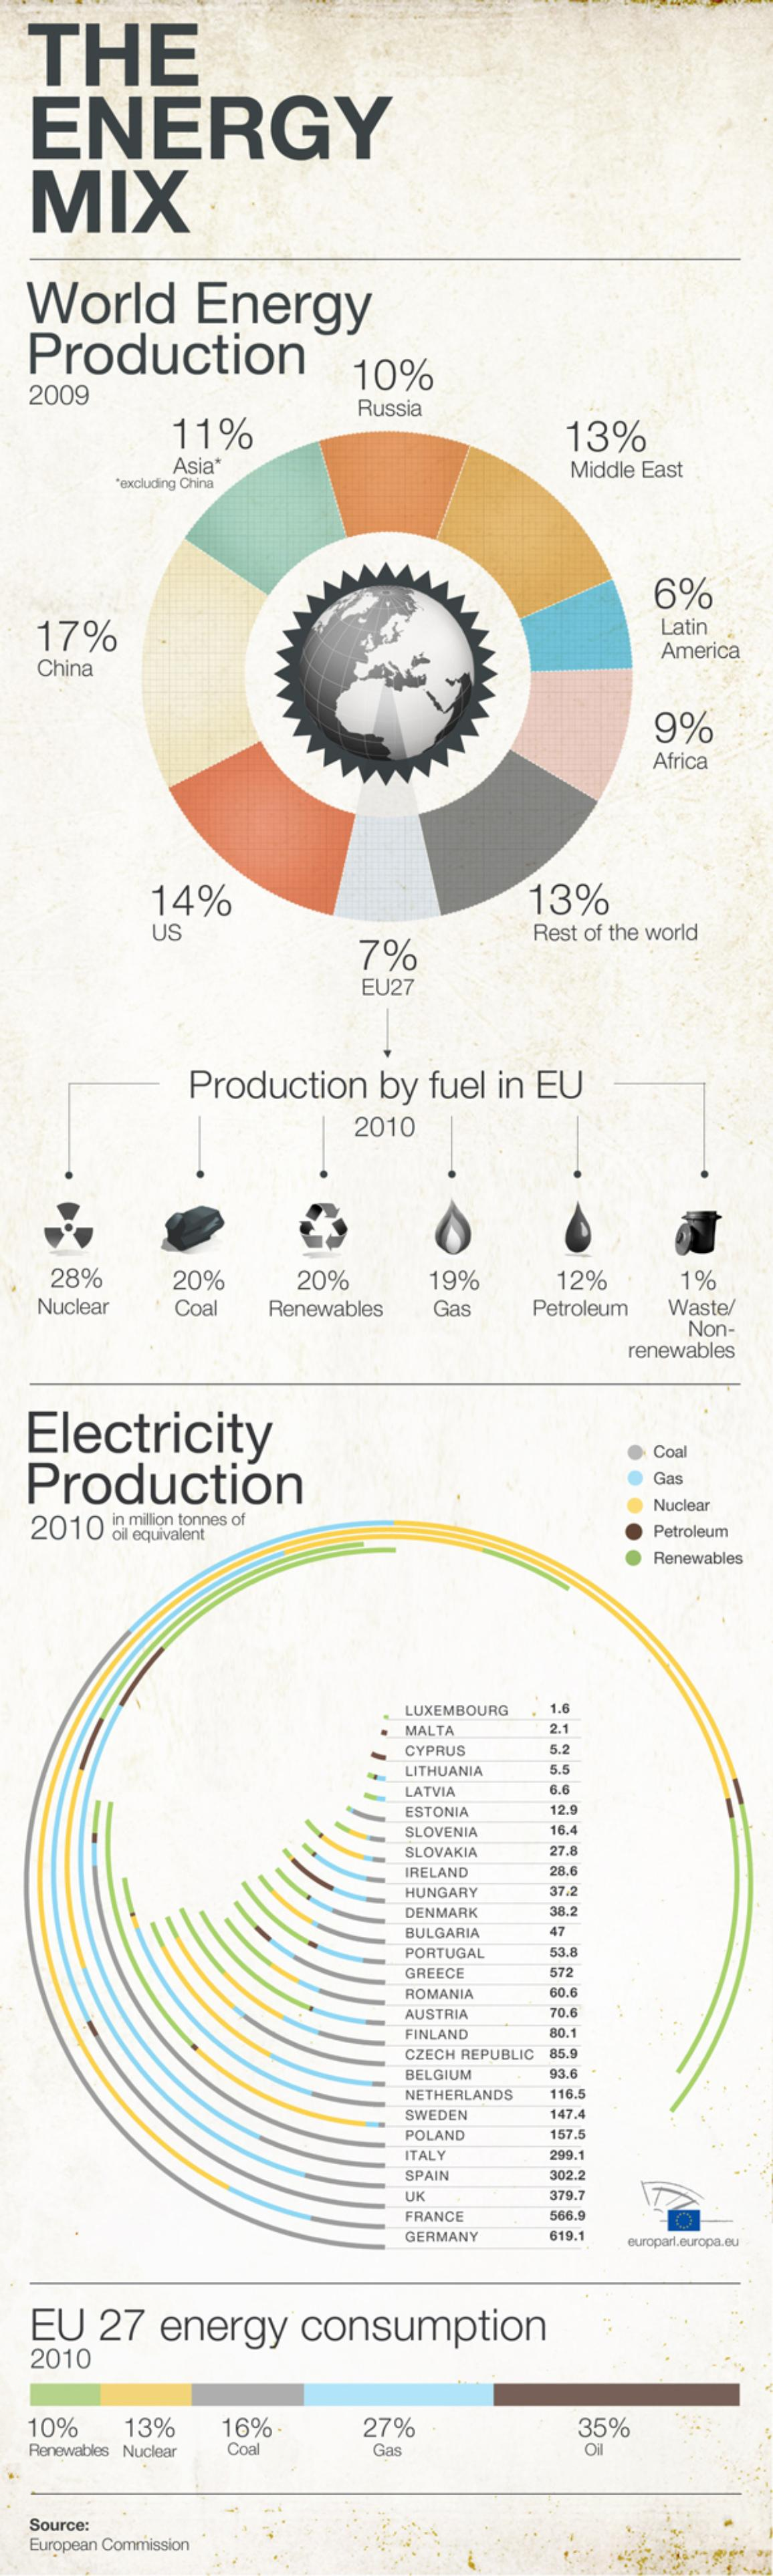 Infographic about EU's energy mix